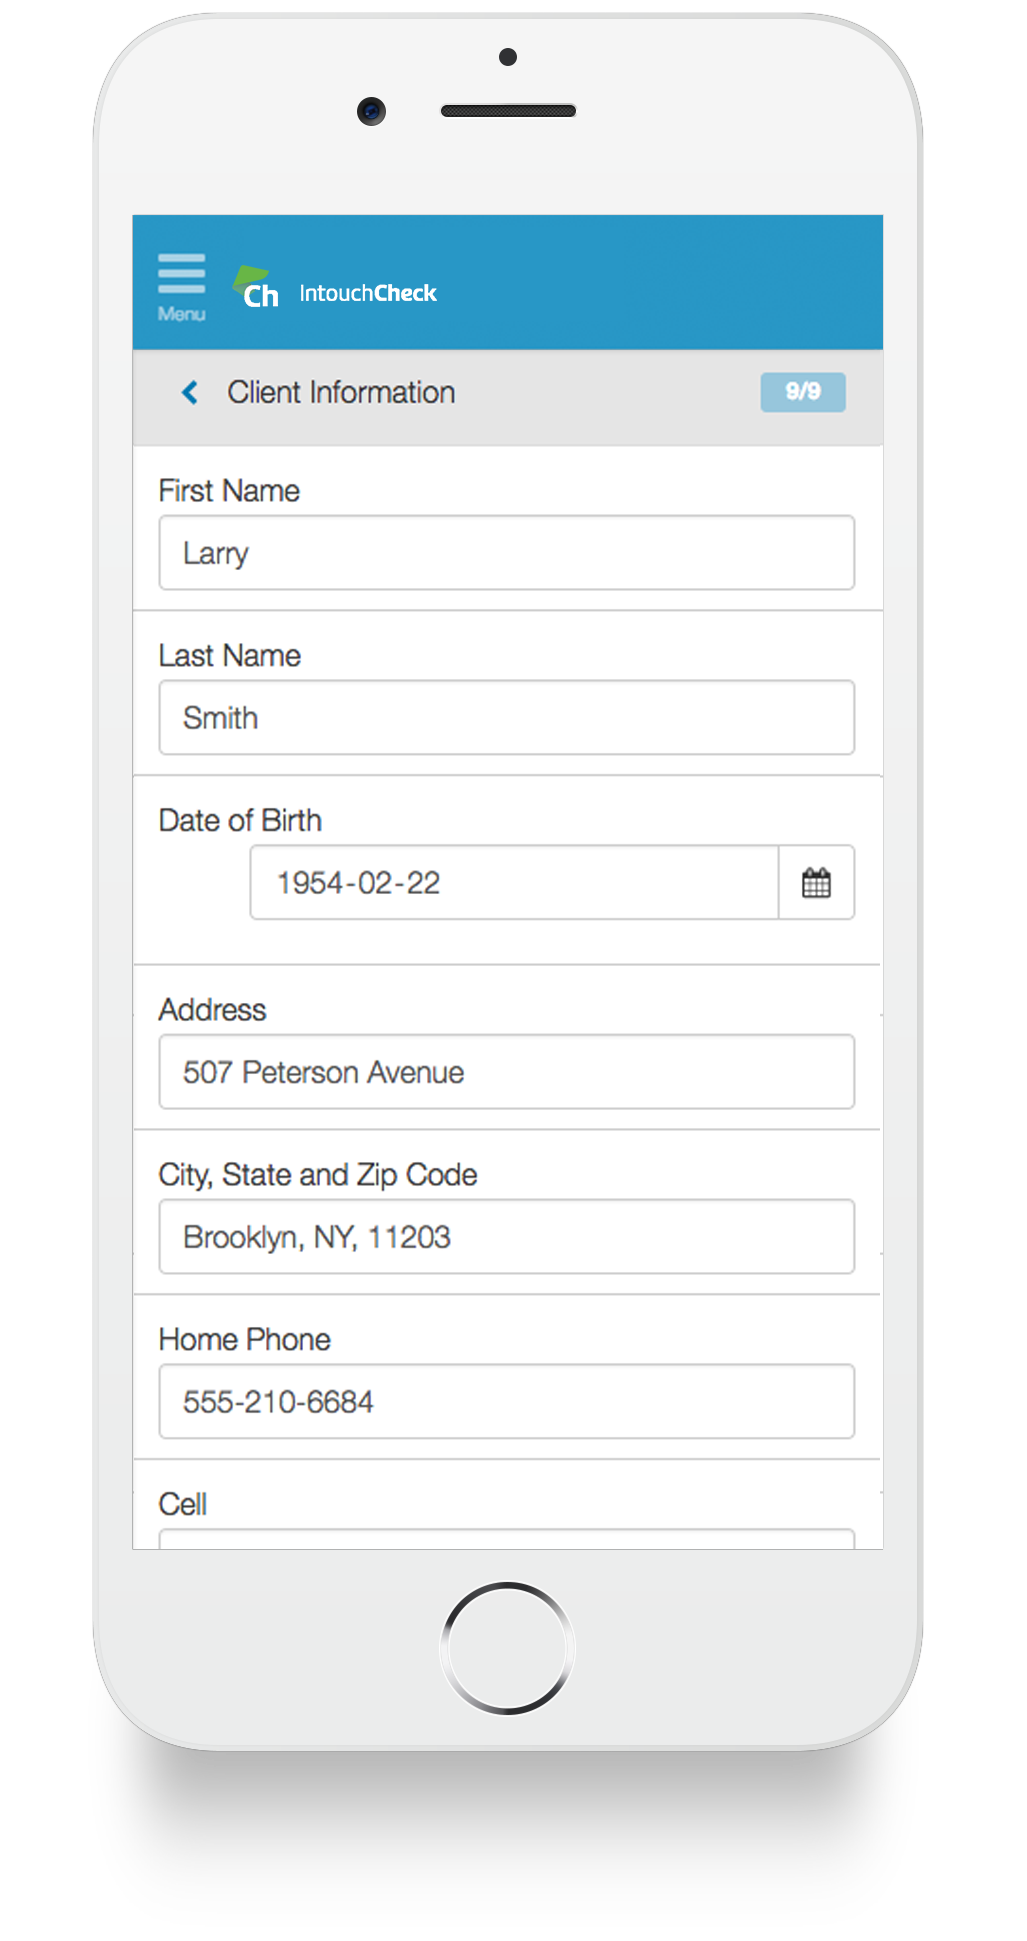 client-contact-info-form-1.png